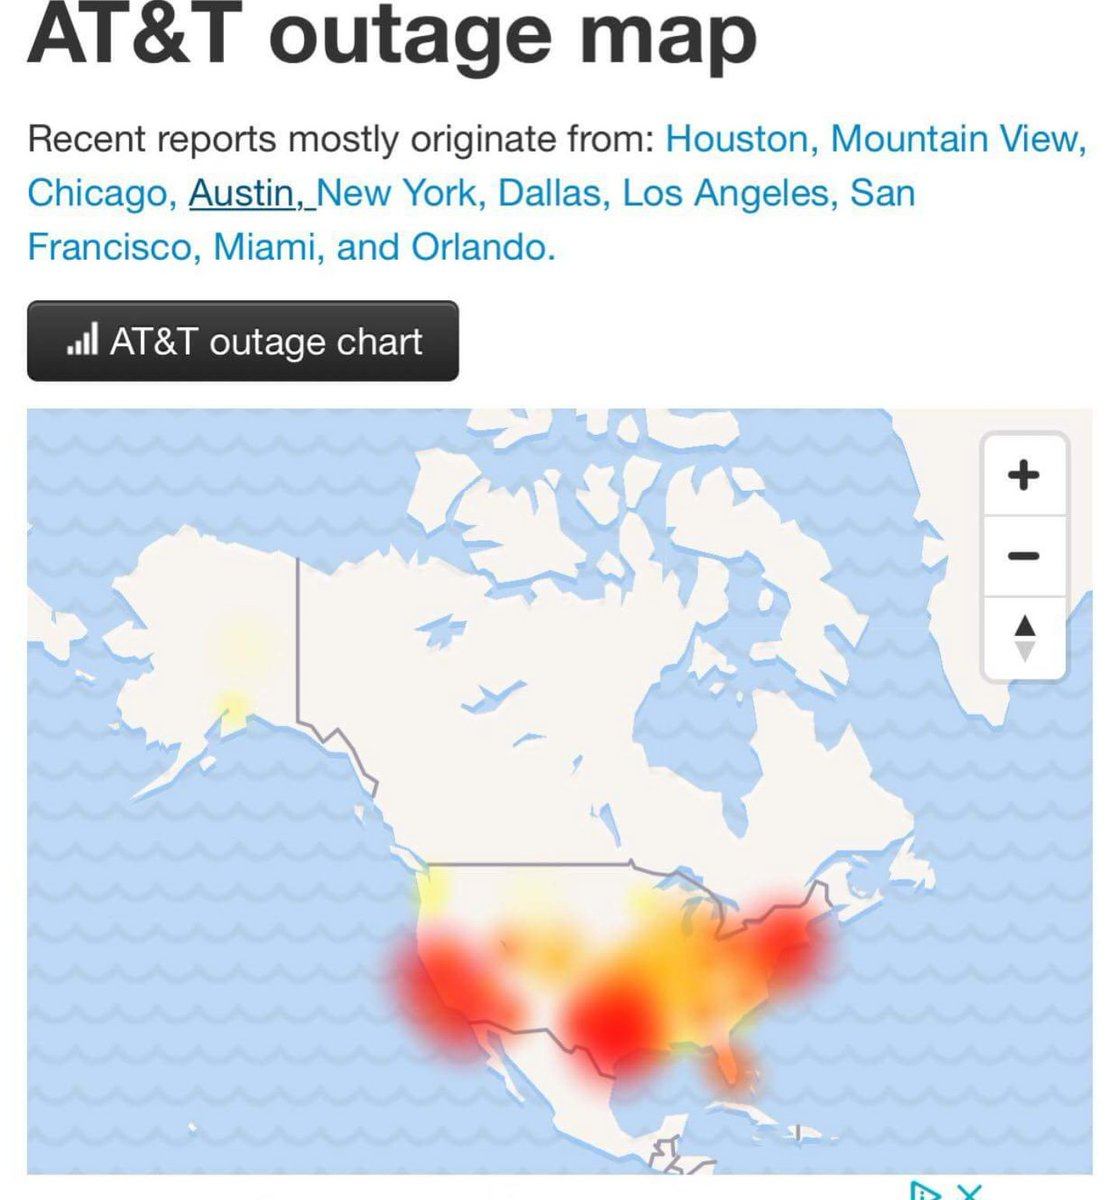 centurylink outage map centurylink outage map fayette county. popular  list centurylink outage map